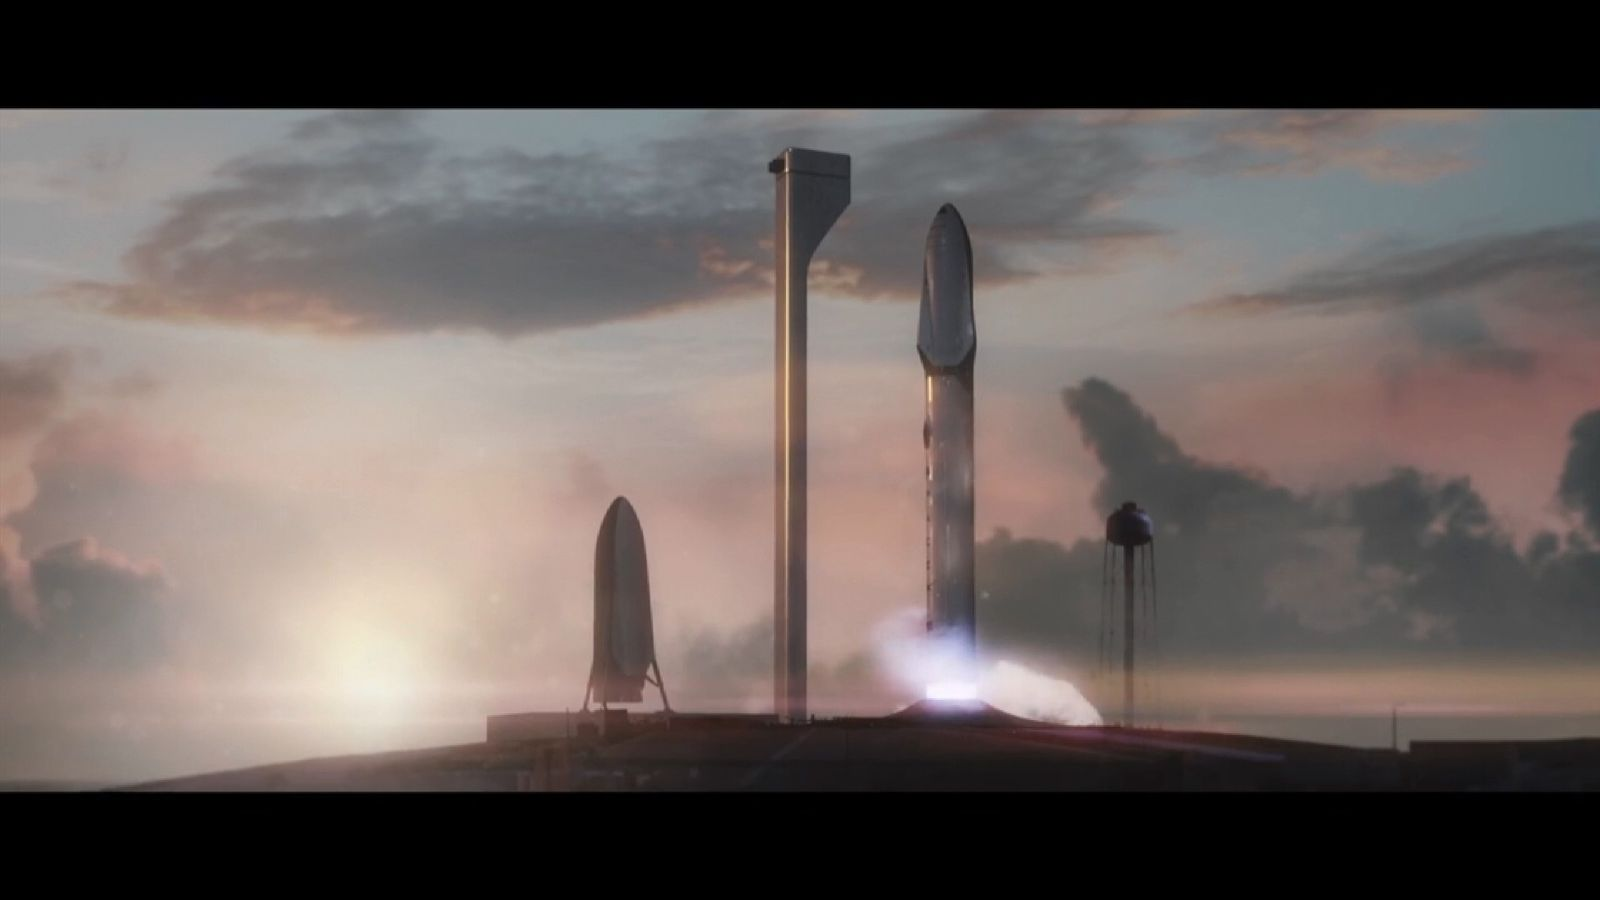 Elon Musk plans to send humans to Mars in 10 years